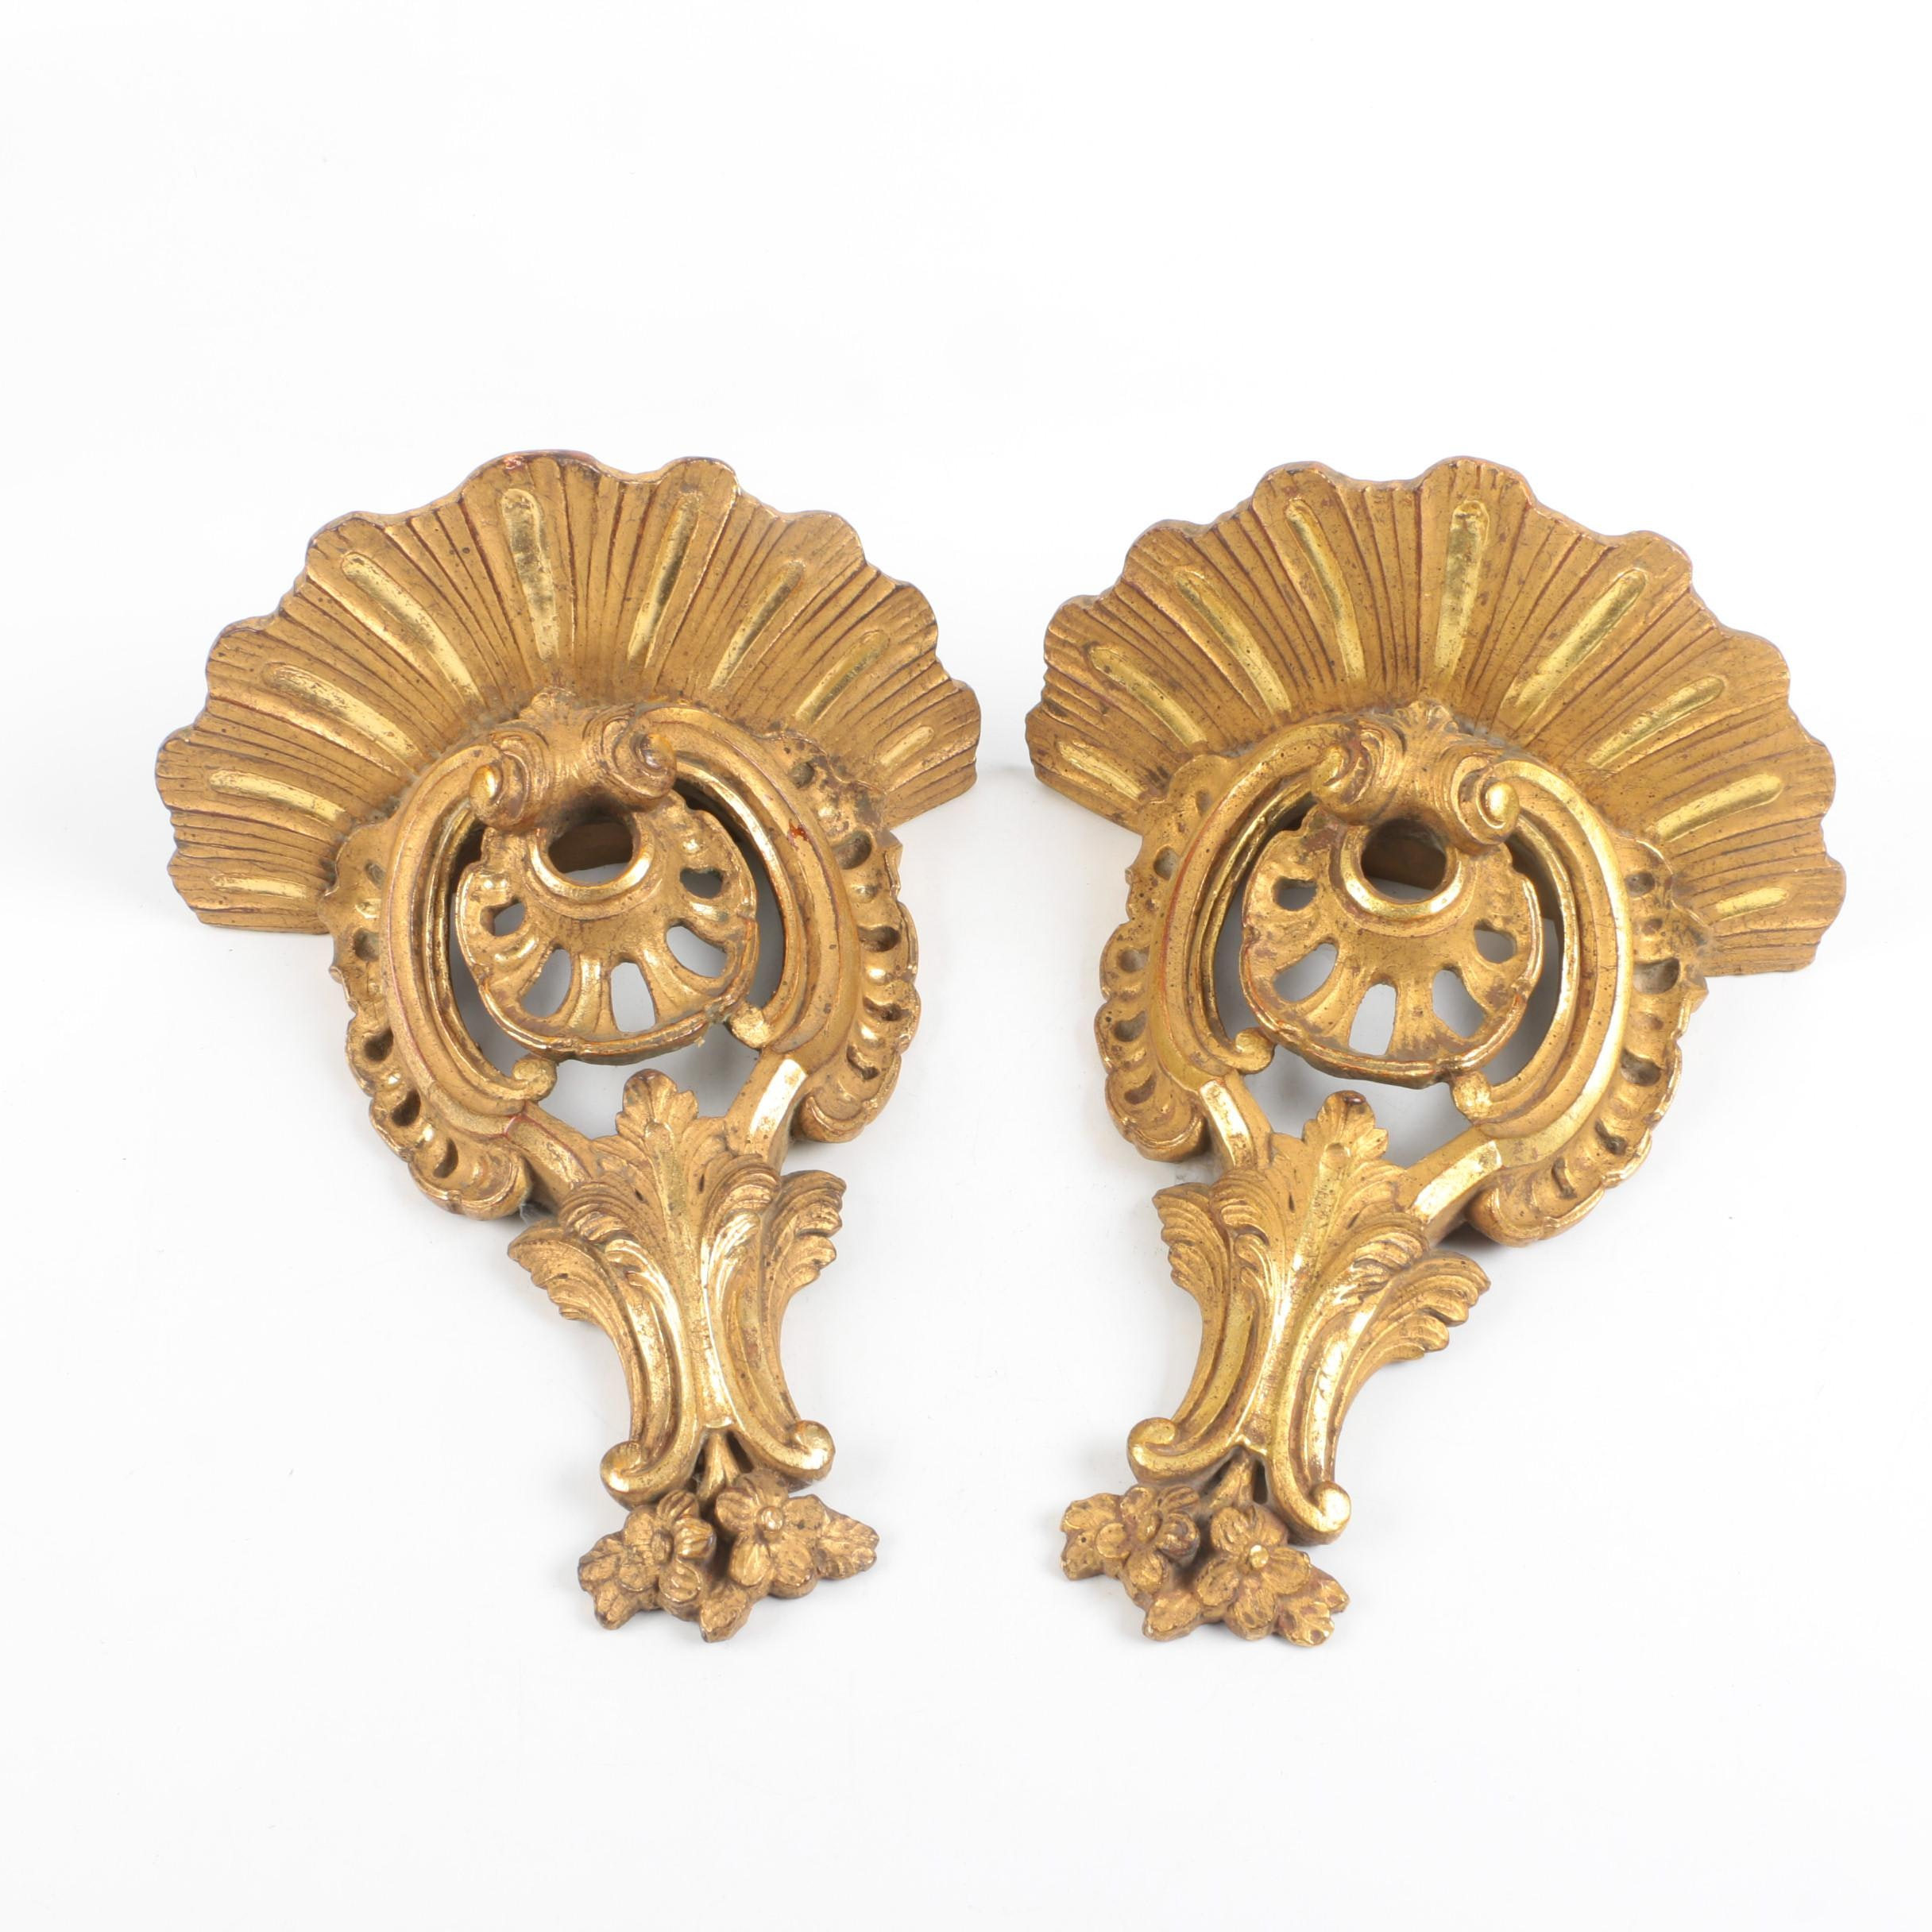 Pair of Gold Tone Wooden Wall Sconces